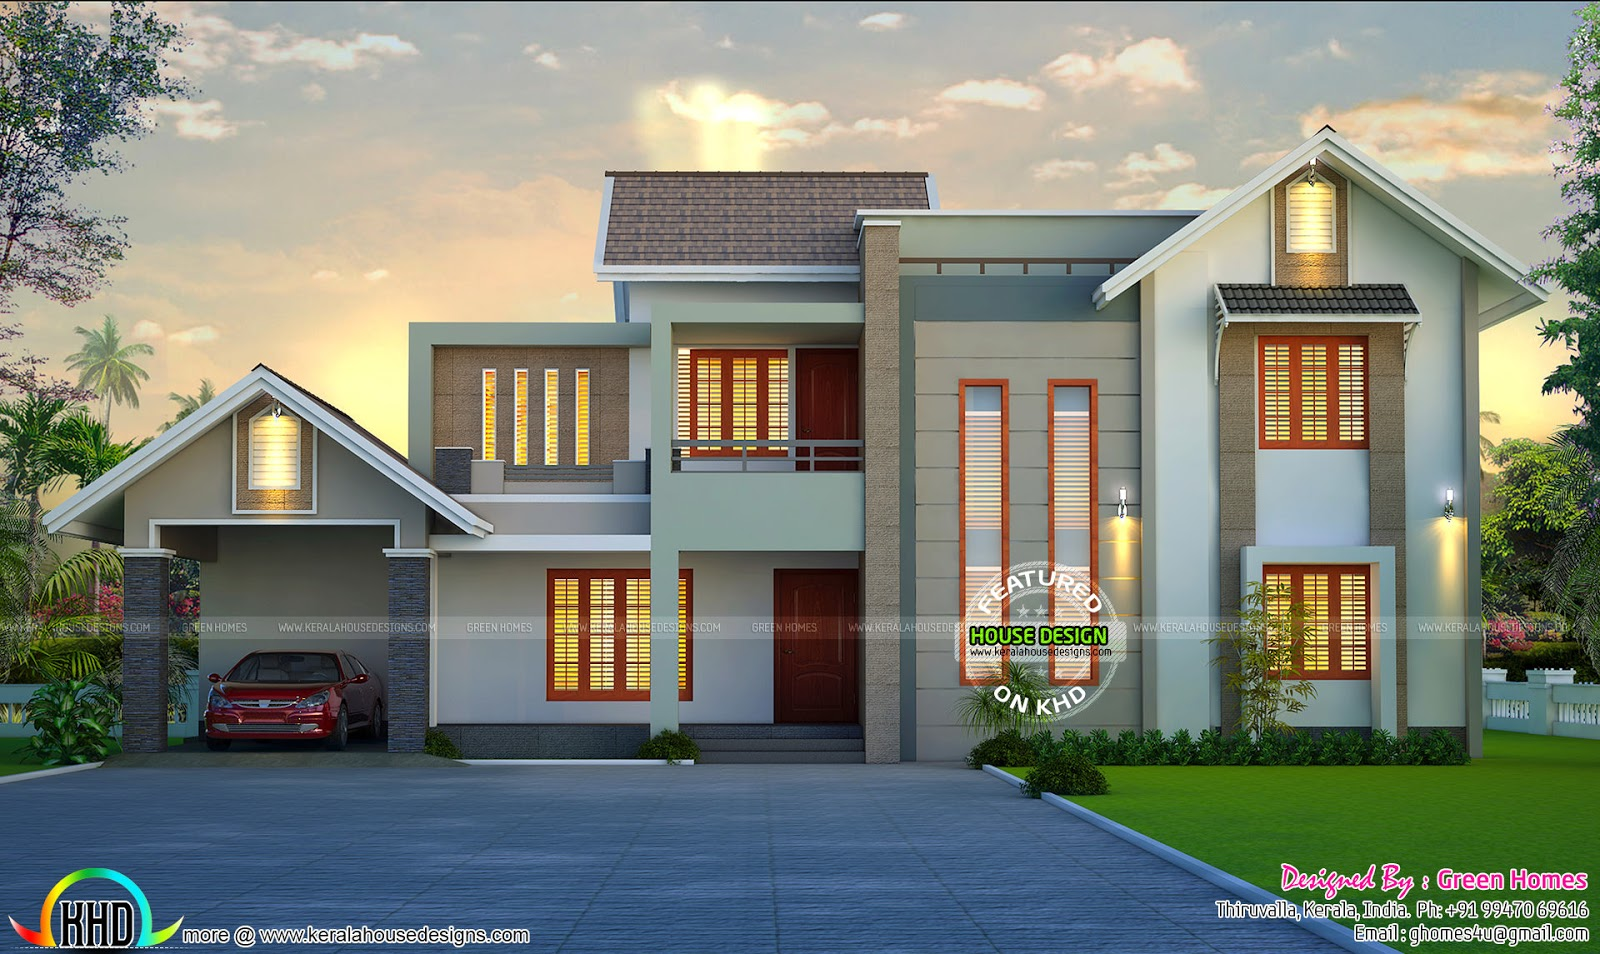 beautiful home design by green homes thiruvalla kerala home design and floor plans. Black Bedroom Furniture Sets. Home Design Ideas